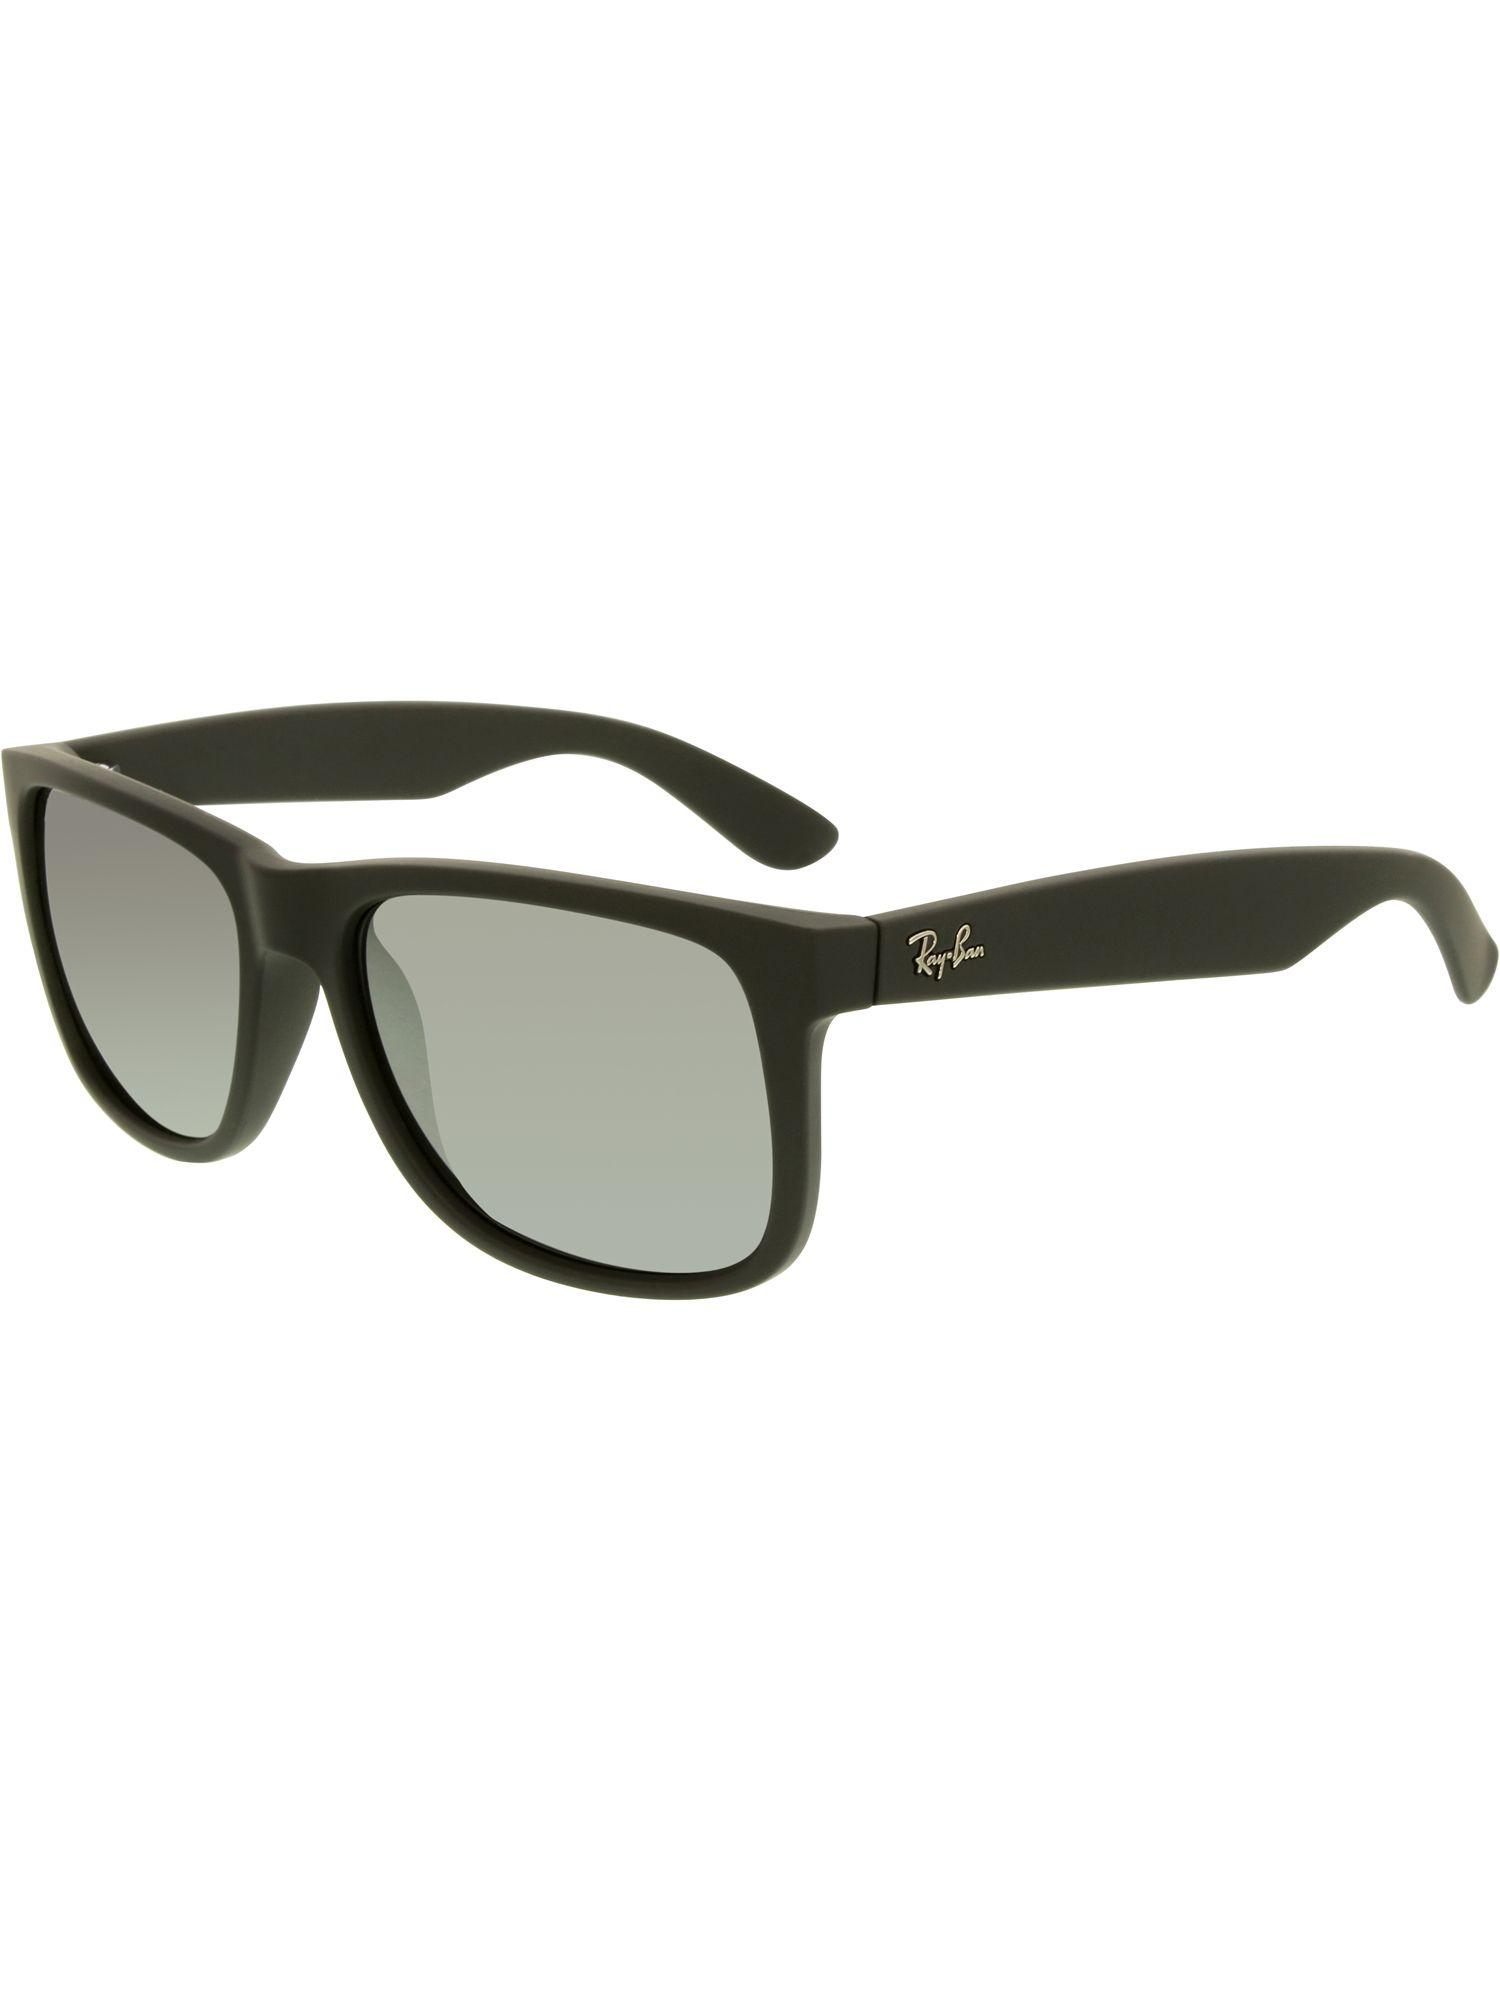 93be8867e8 Lyst - Ray-Ban Justin Rb4165-622 6g-55 Black Wayfarer Sunglasses in ...